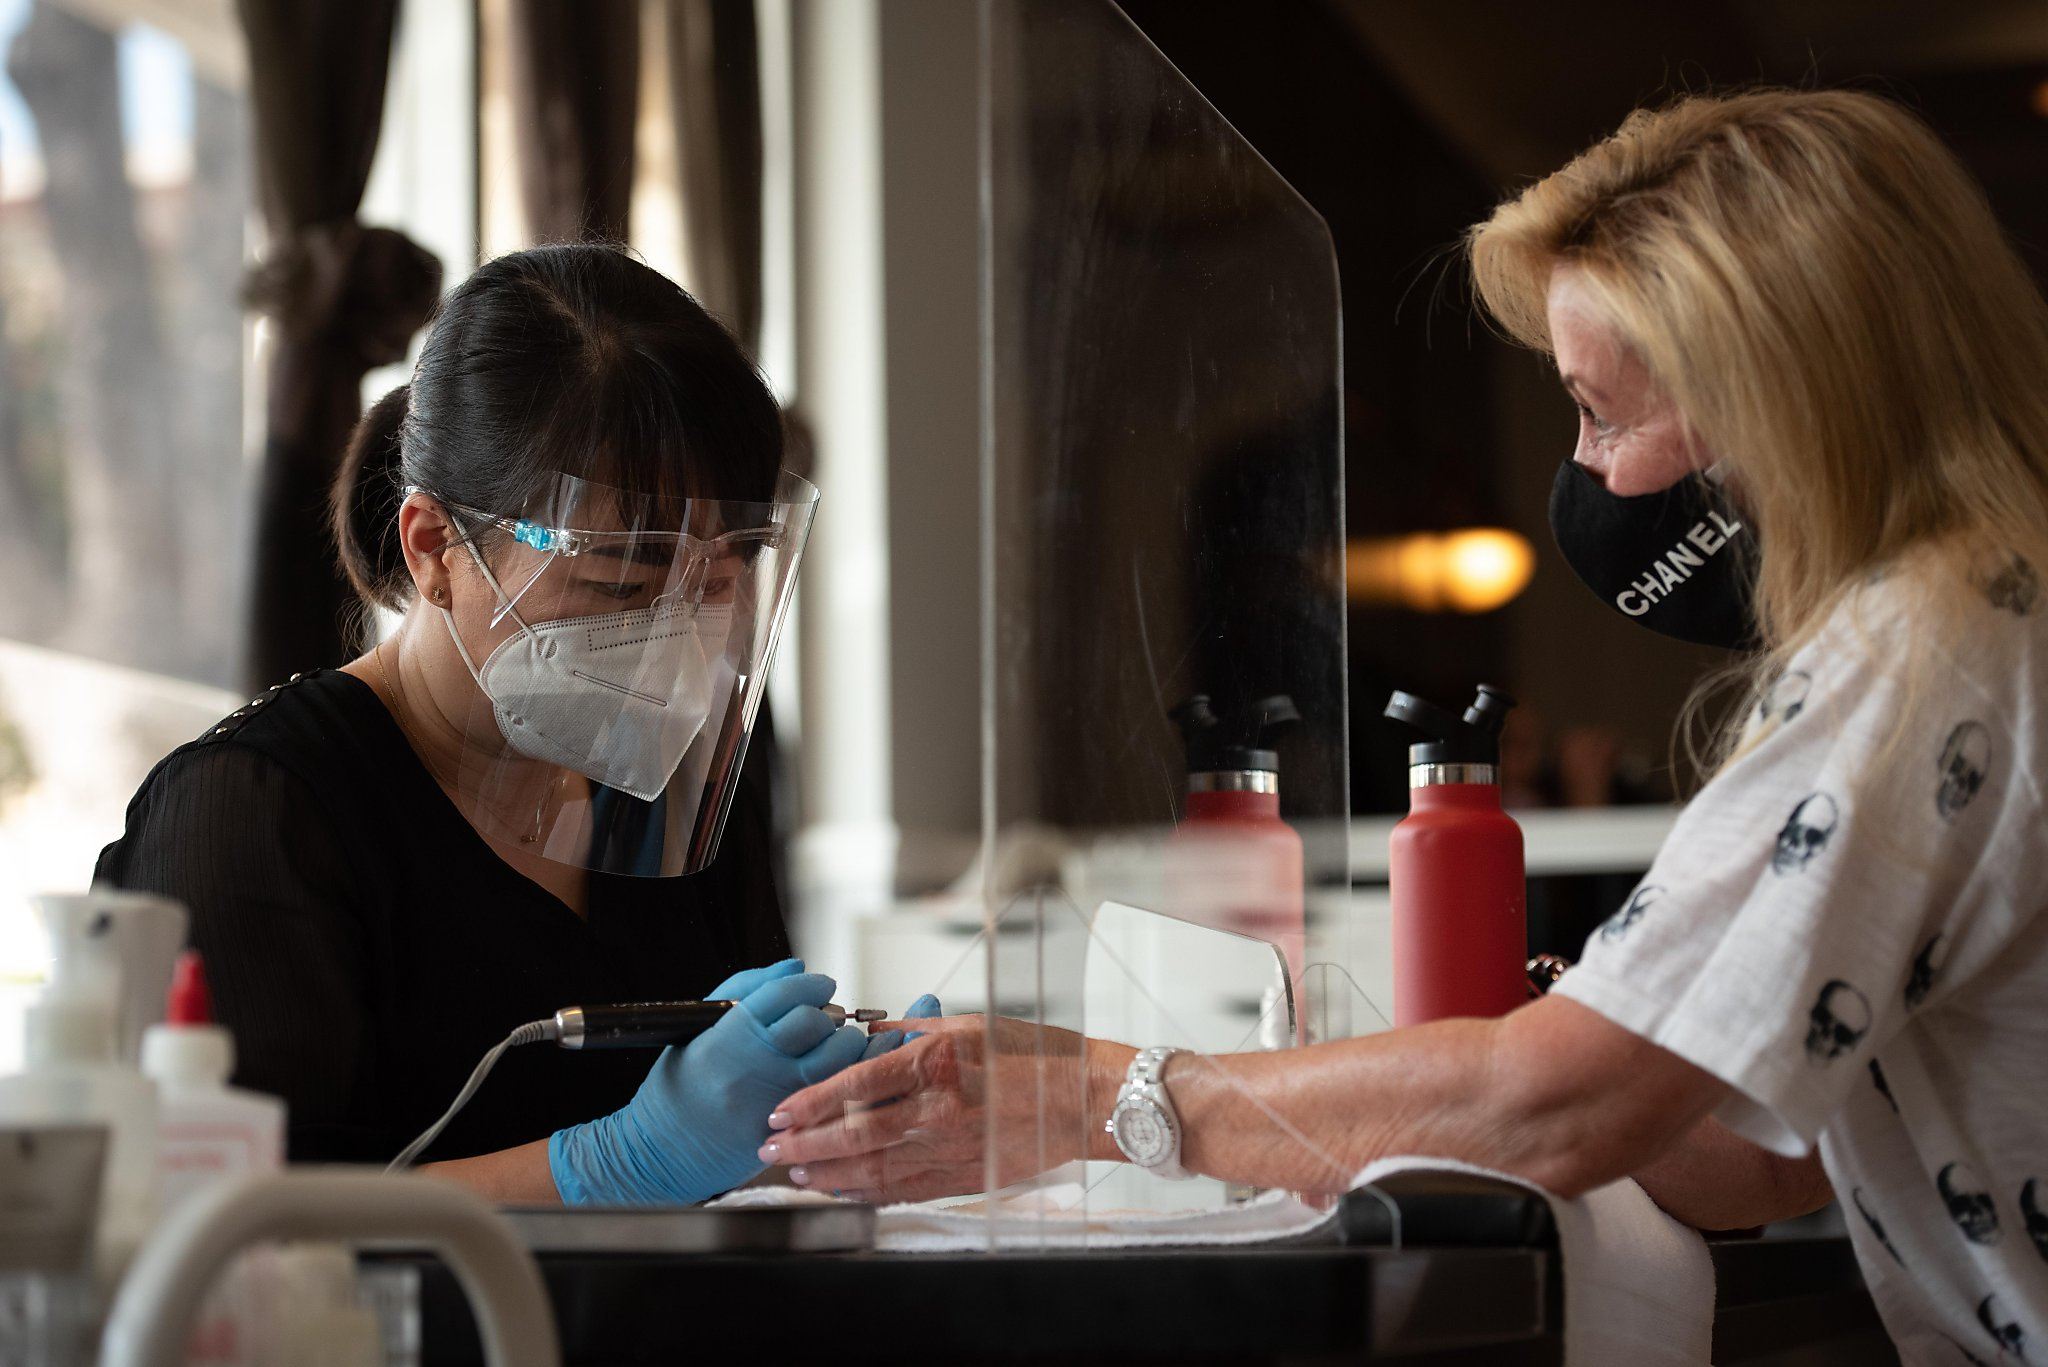 Coronavirus live updates: Halloween mask instead of protective face covering? It won't fly in California